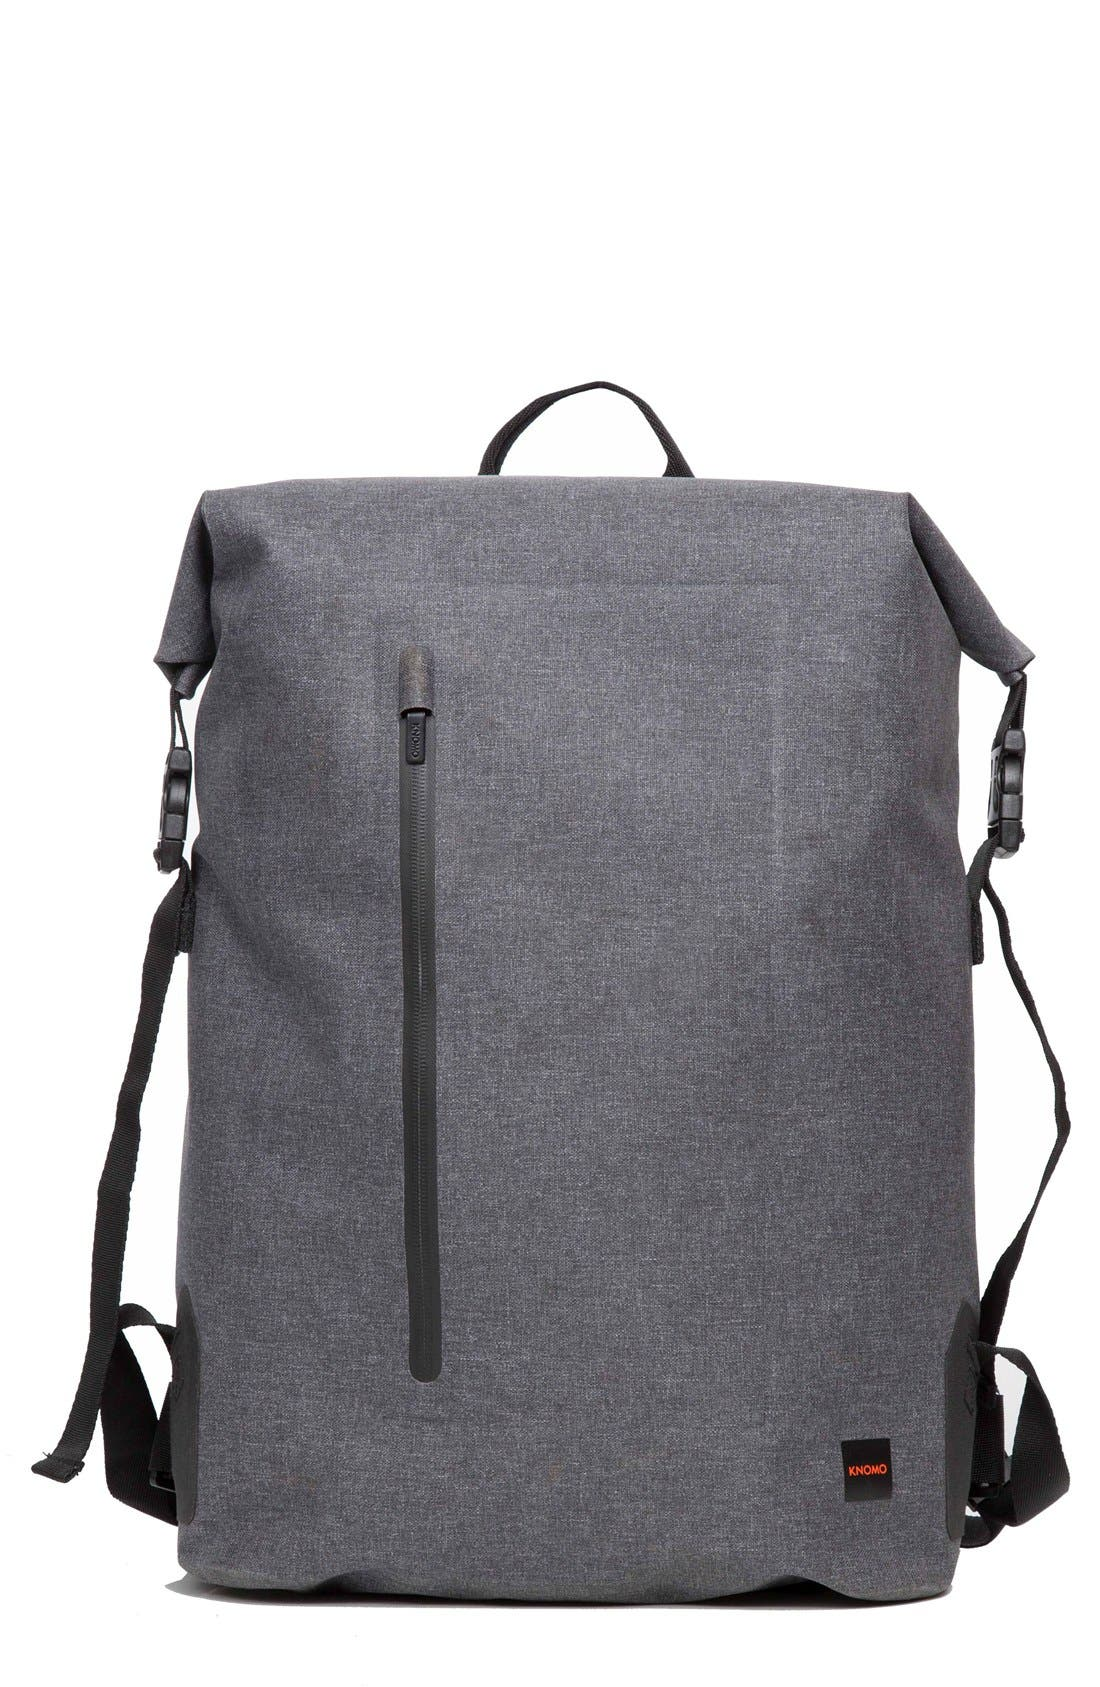 Thames Cromwell Roll Top Backpack,                             Main thumbnail 1, color,                             Grey